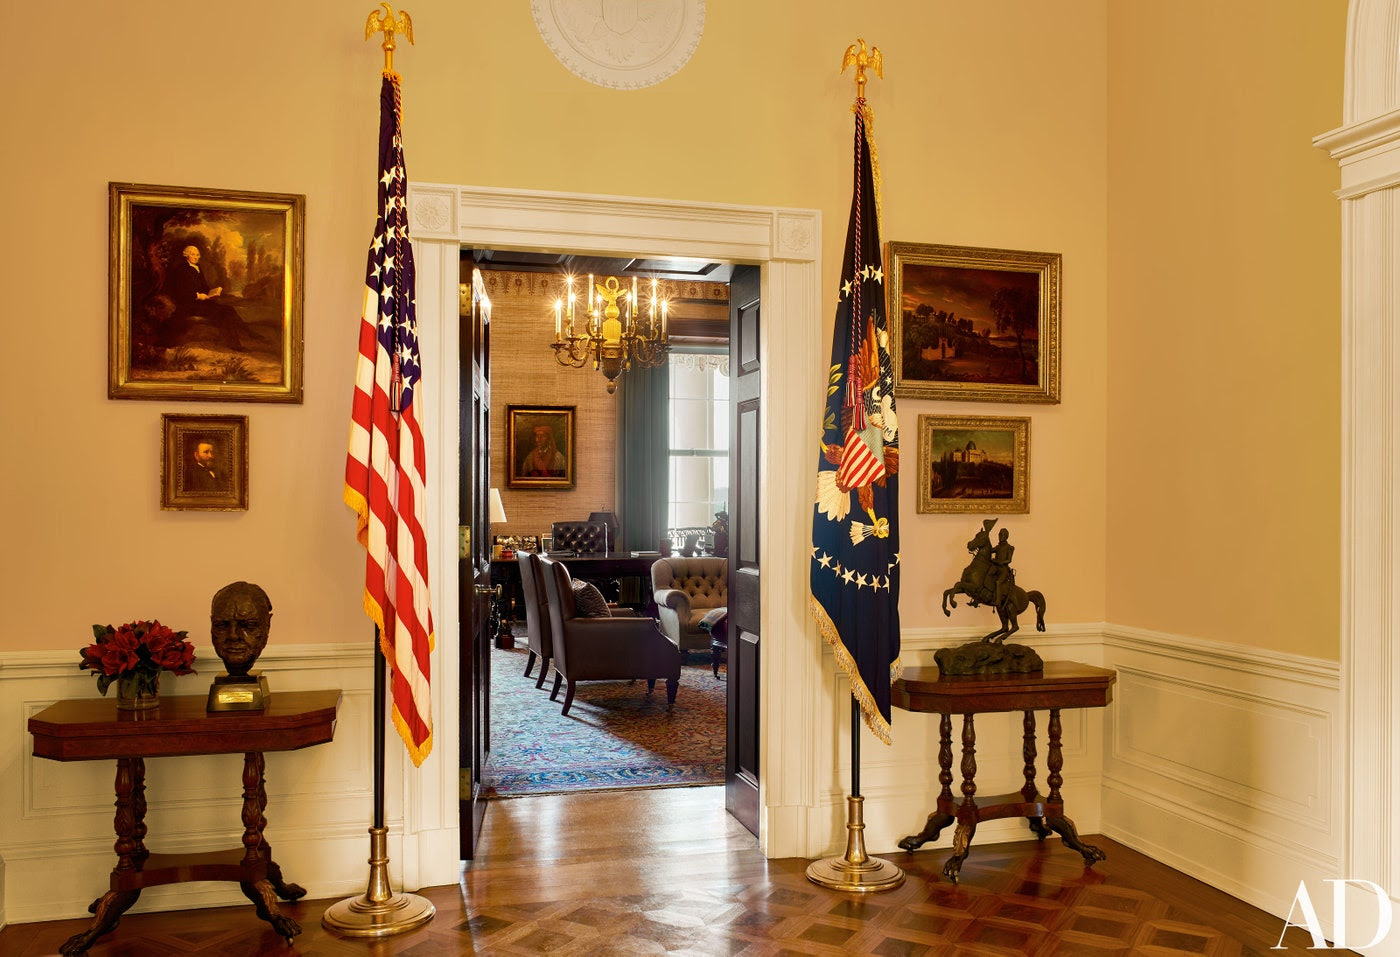 At the Treaty Room entrance, Sir Jacob Epstein's 1946 bust of Winston Churchill stands on a circa-1810 New York card table.